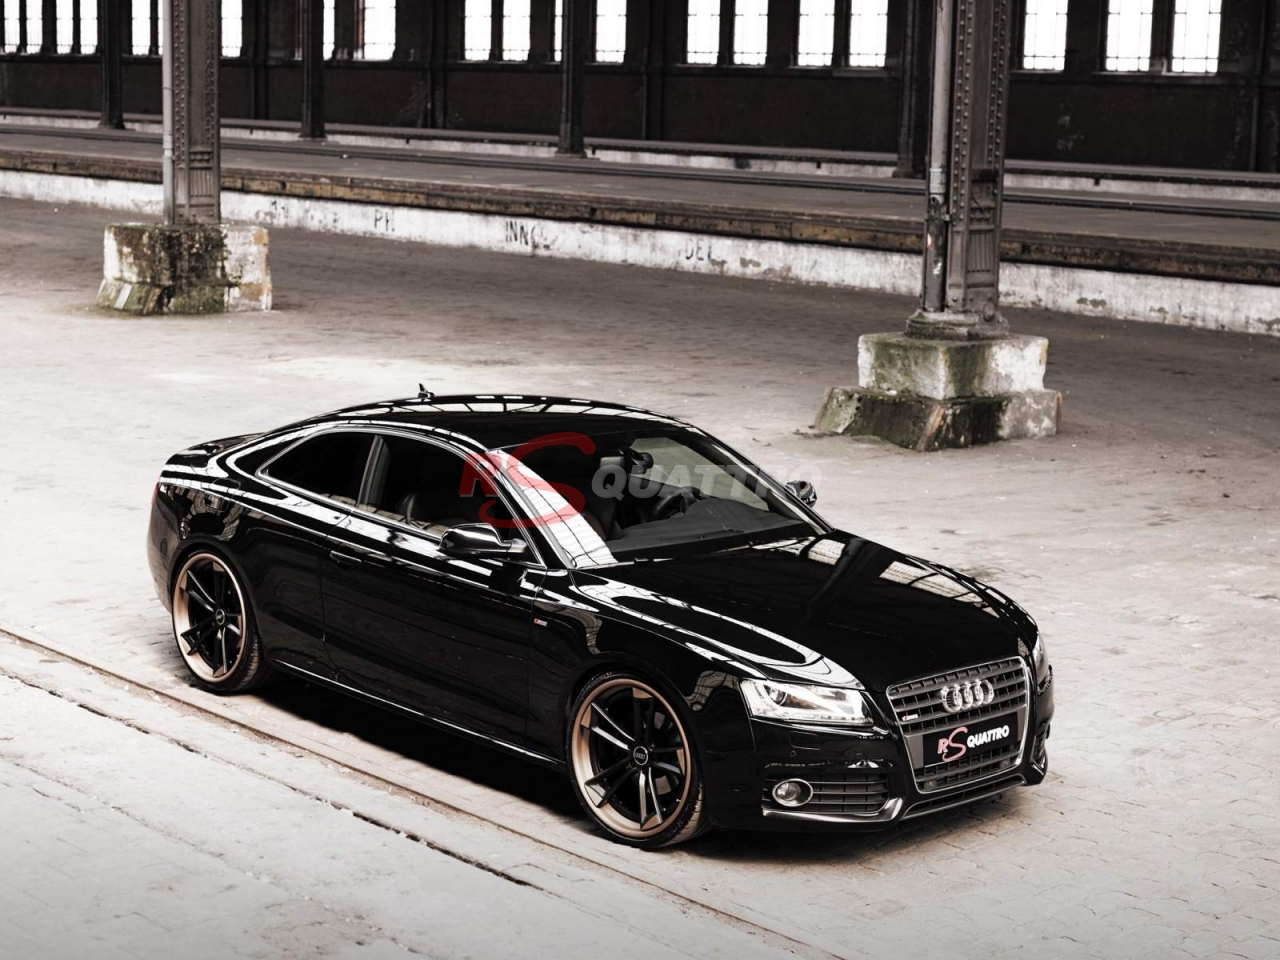 Audi A Coupé Black RSQUATTRO - Black audi a5